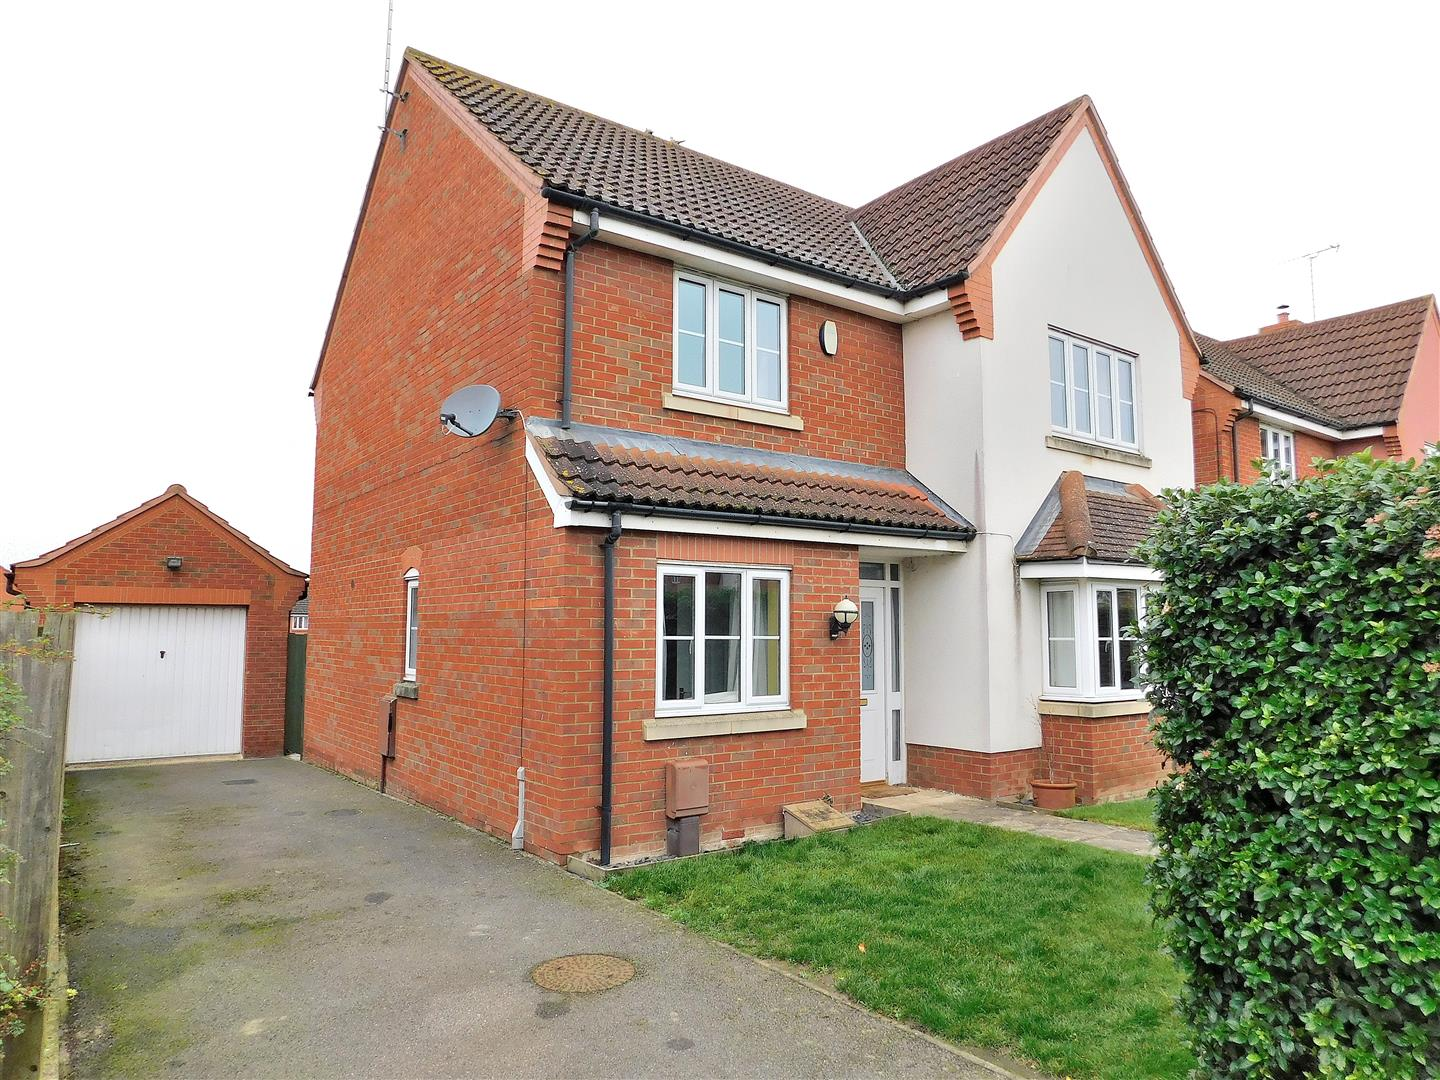 4 bed detached house for sale in King's Lynn, PE30 4GJ - Property Image 1